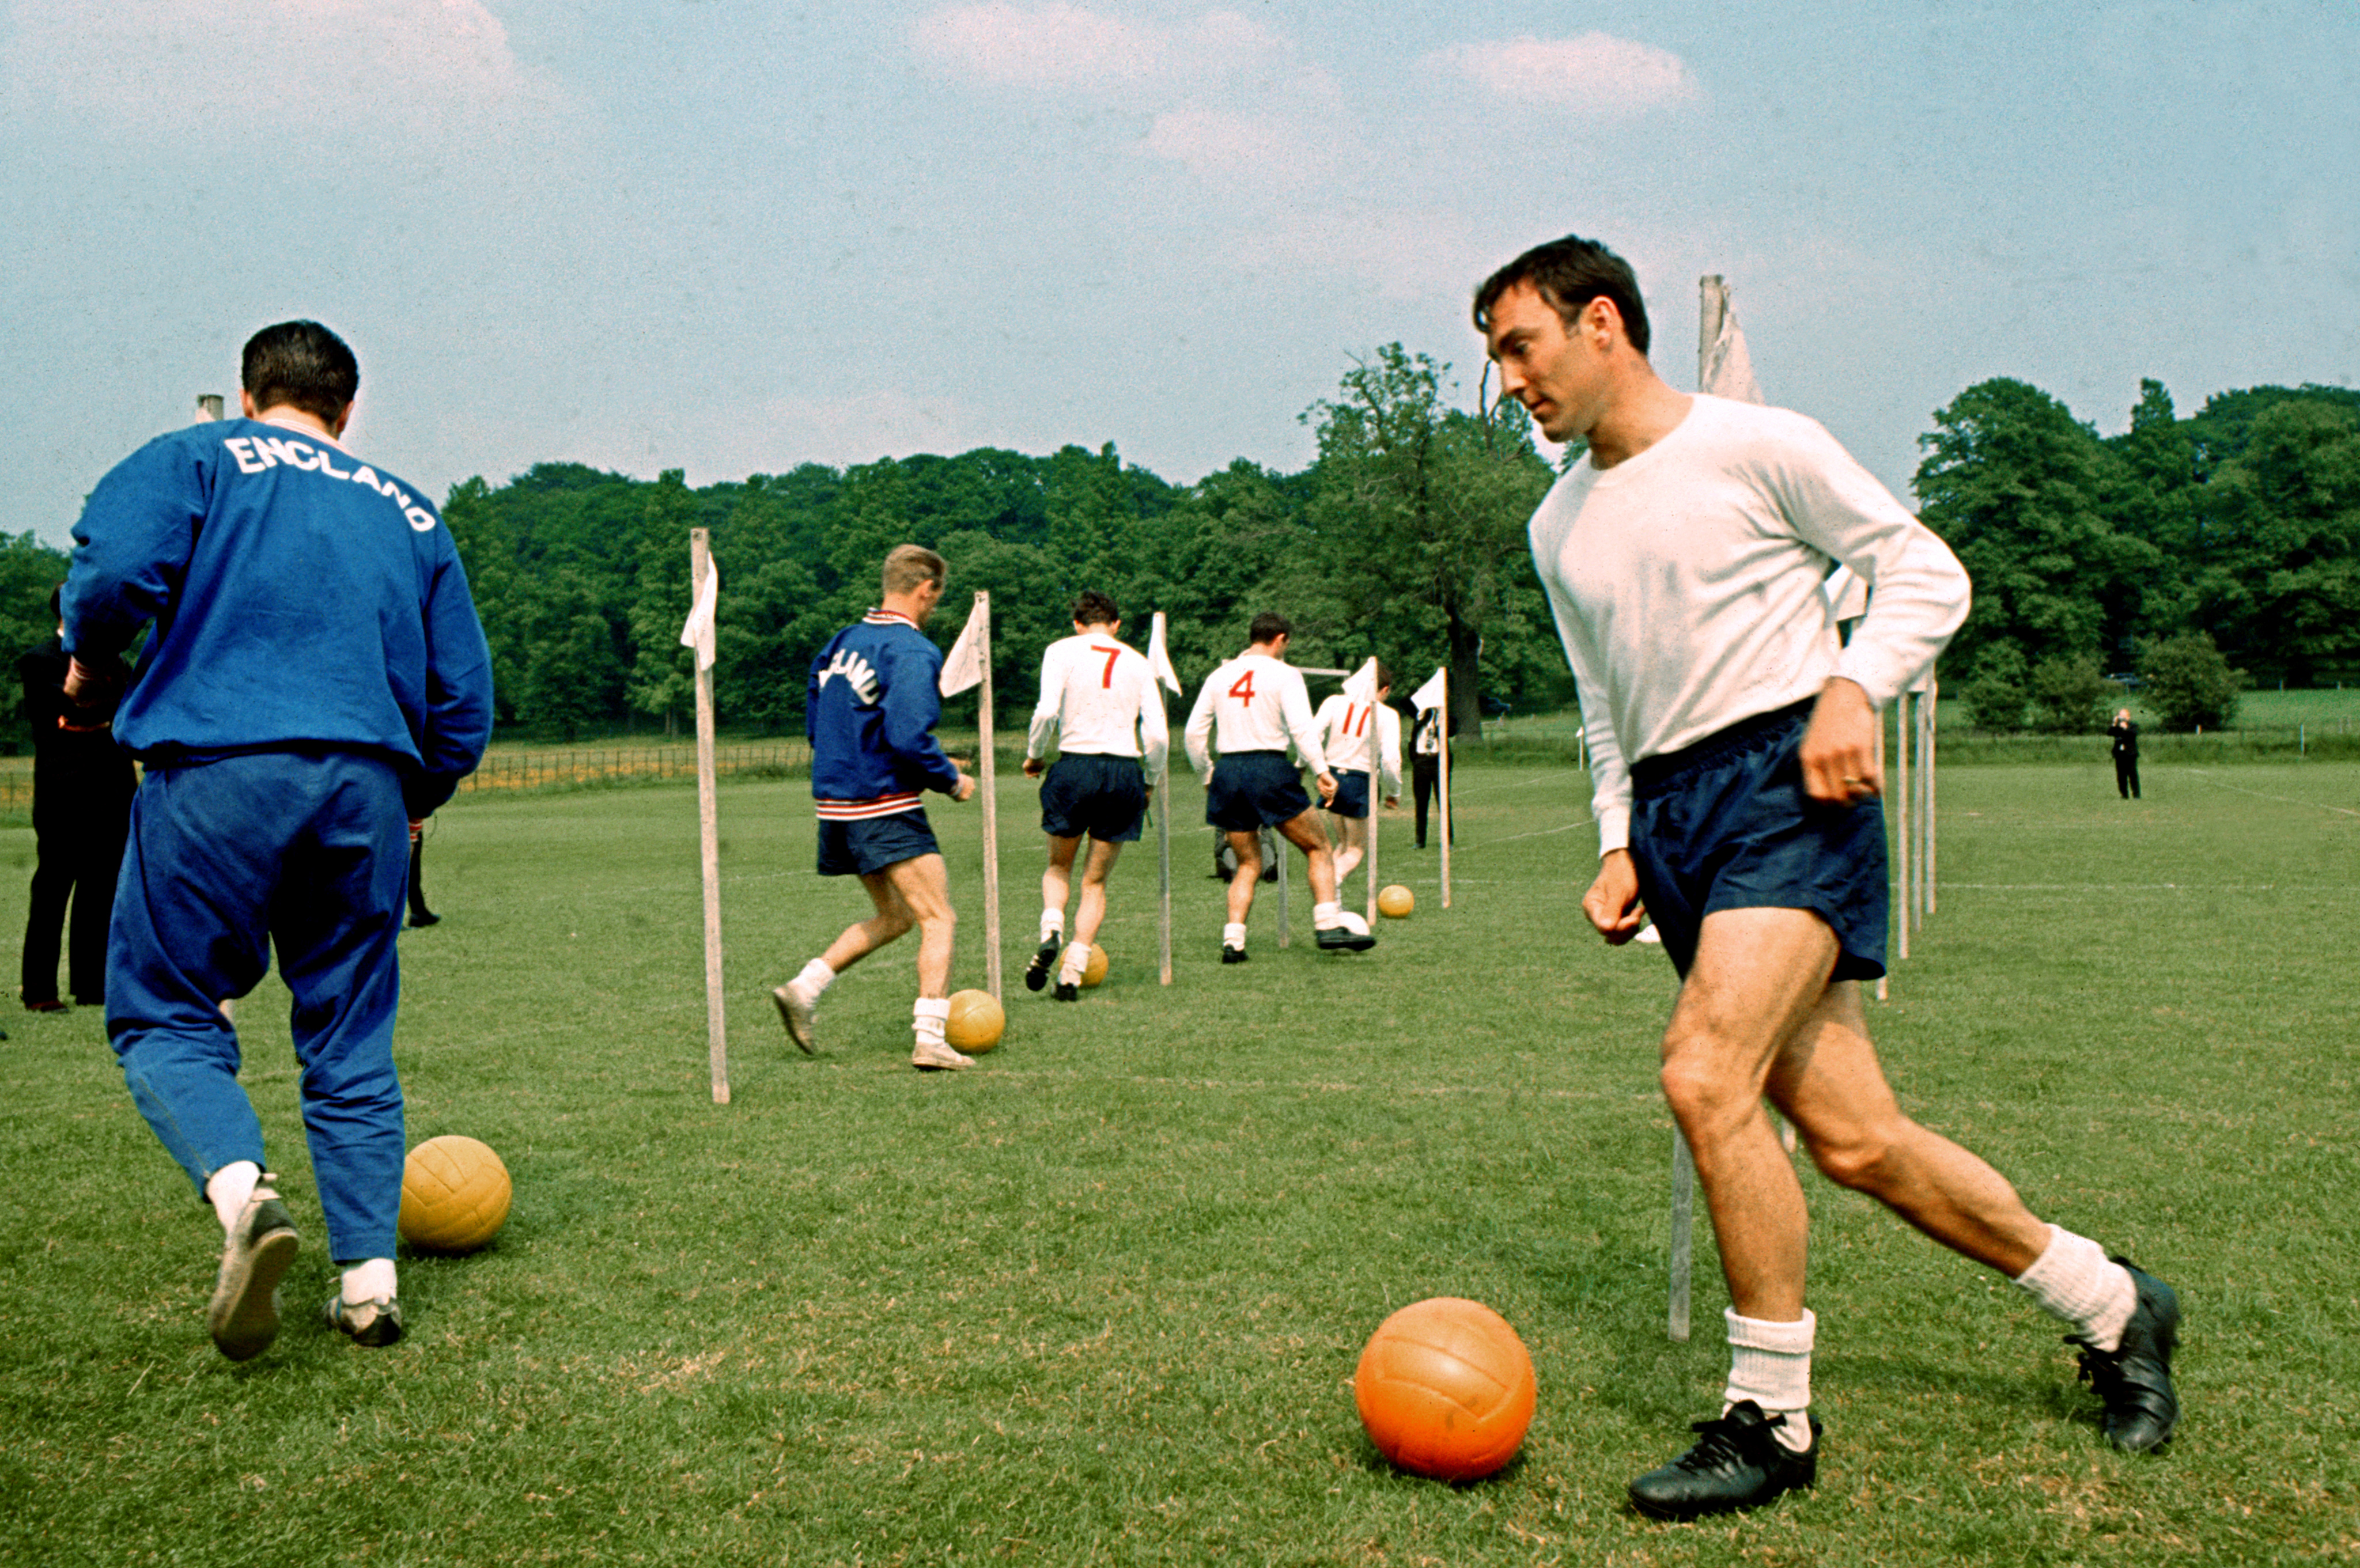 Soccer - World Cup England 66 - England Possibles Training - Lilleshall